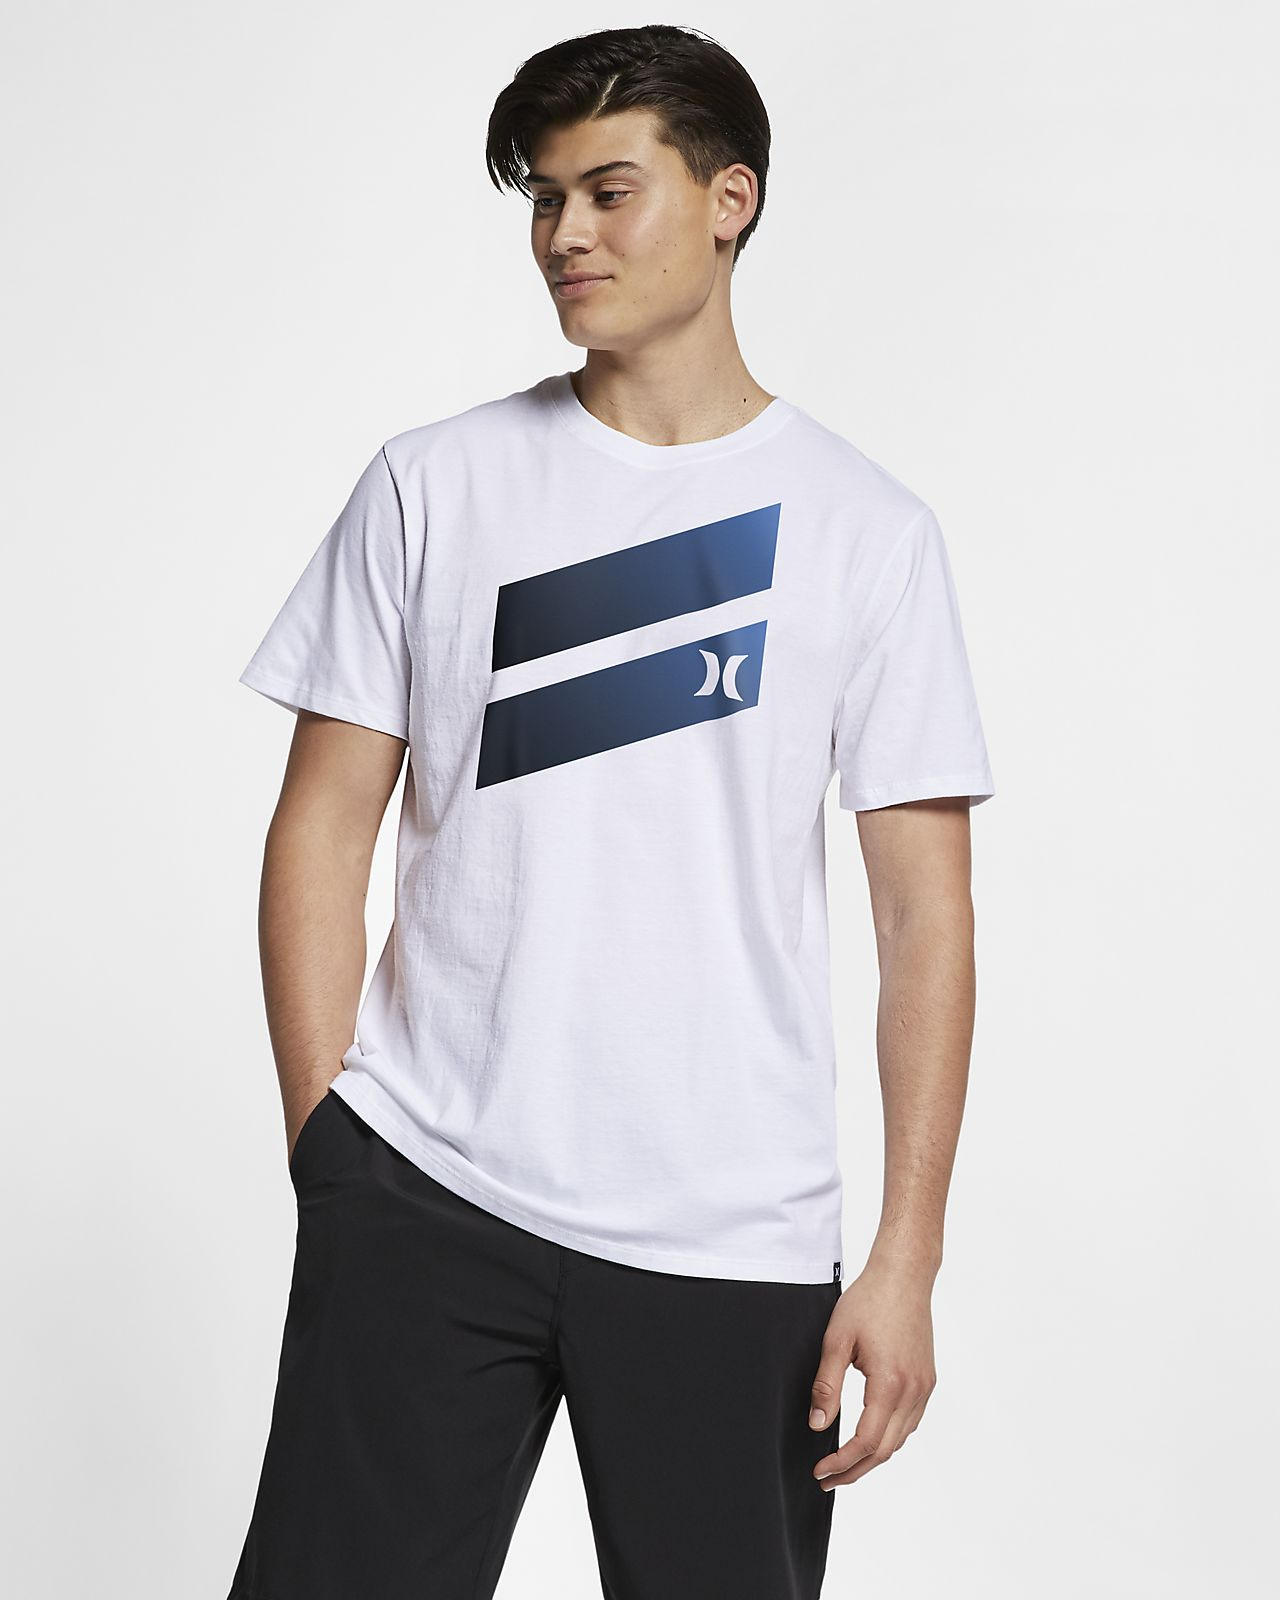 T-shirt Premium Fit Hurley Premium Icon Slash Gradient - Uomo